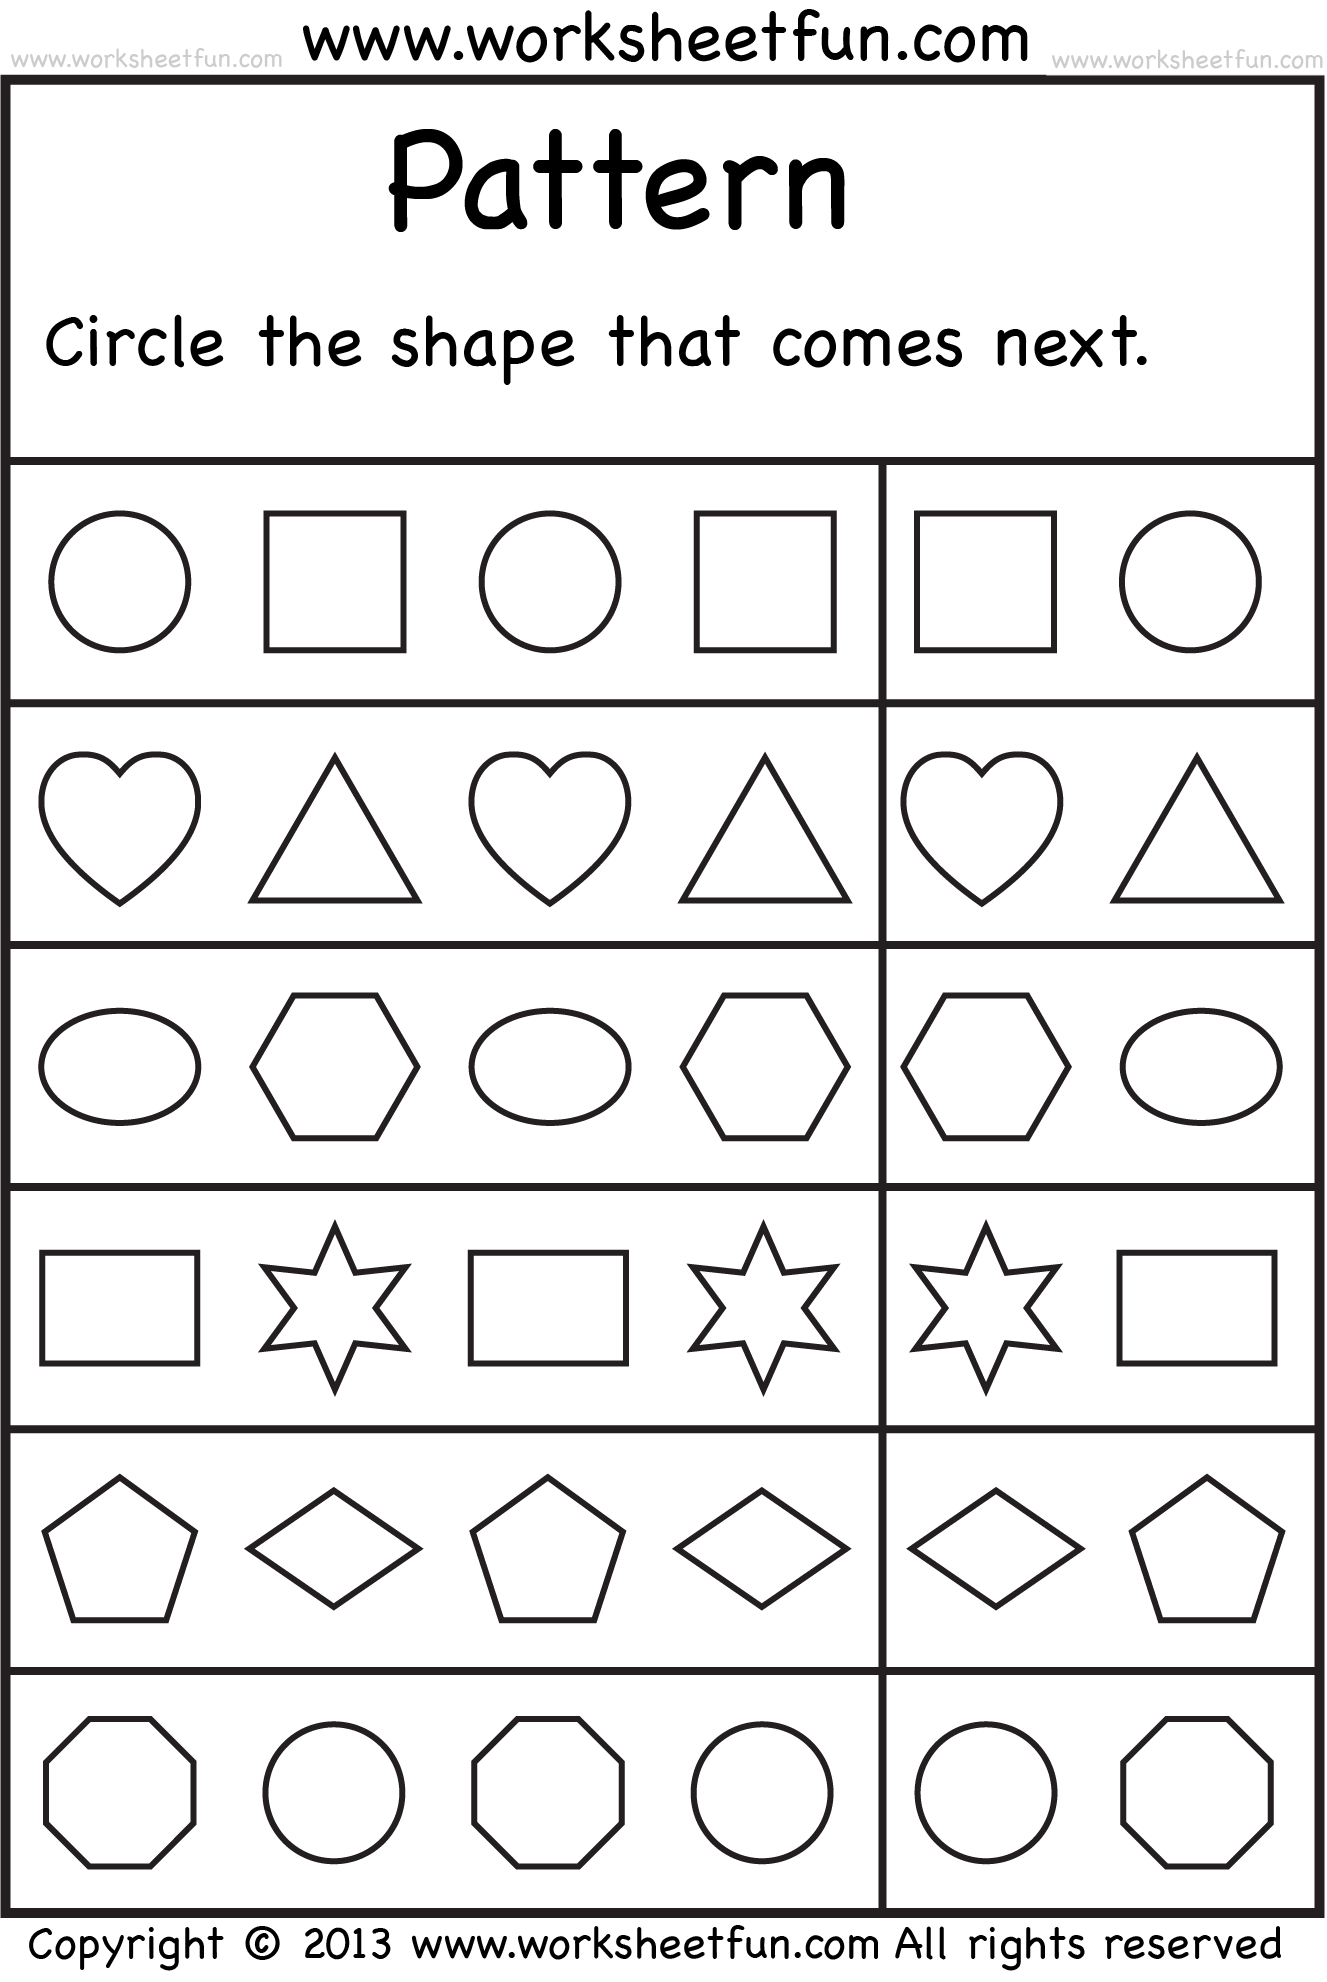 Proatmealus  Sweet  Images About School Worksheets On Pinterest  Number Words  With Magnificent  Images About School Worksheets On Pinterest  Number Words Alphabet Worksheets And Free Printable Kindergarten Worksheets With Divine Linear Relationships Worksheets Also Noun Worksheets Ks In Addition Early Years Worksheets And Tally Chart Worksheets Rd Grade As Well As H Worksheets For Kindergarten Additionally Sunday School Worksheet From Pinterestcom With Proatmealus  Magnificent  Images About School Worksheets On Pinterest  Number Words  With Divine  Images About School Worksheets On Pinterest  Number Words Alphabet Worksheets And Free Printable Kindergarten Worksheets And Sweet Linear Relationships Worksheets Also Noun Worksheets Ks In Addition Early Years Worksheets From Pinterestcom